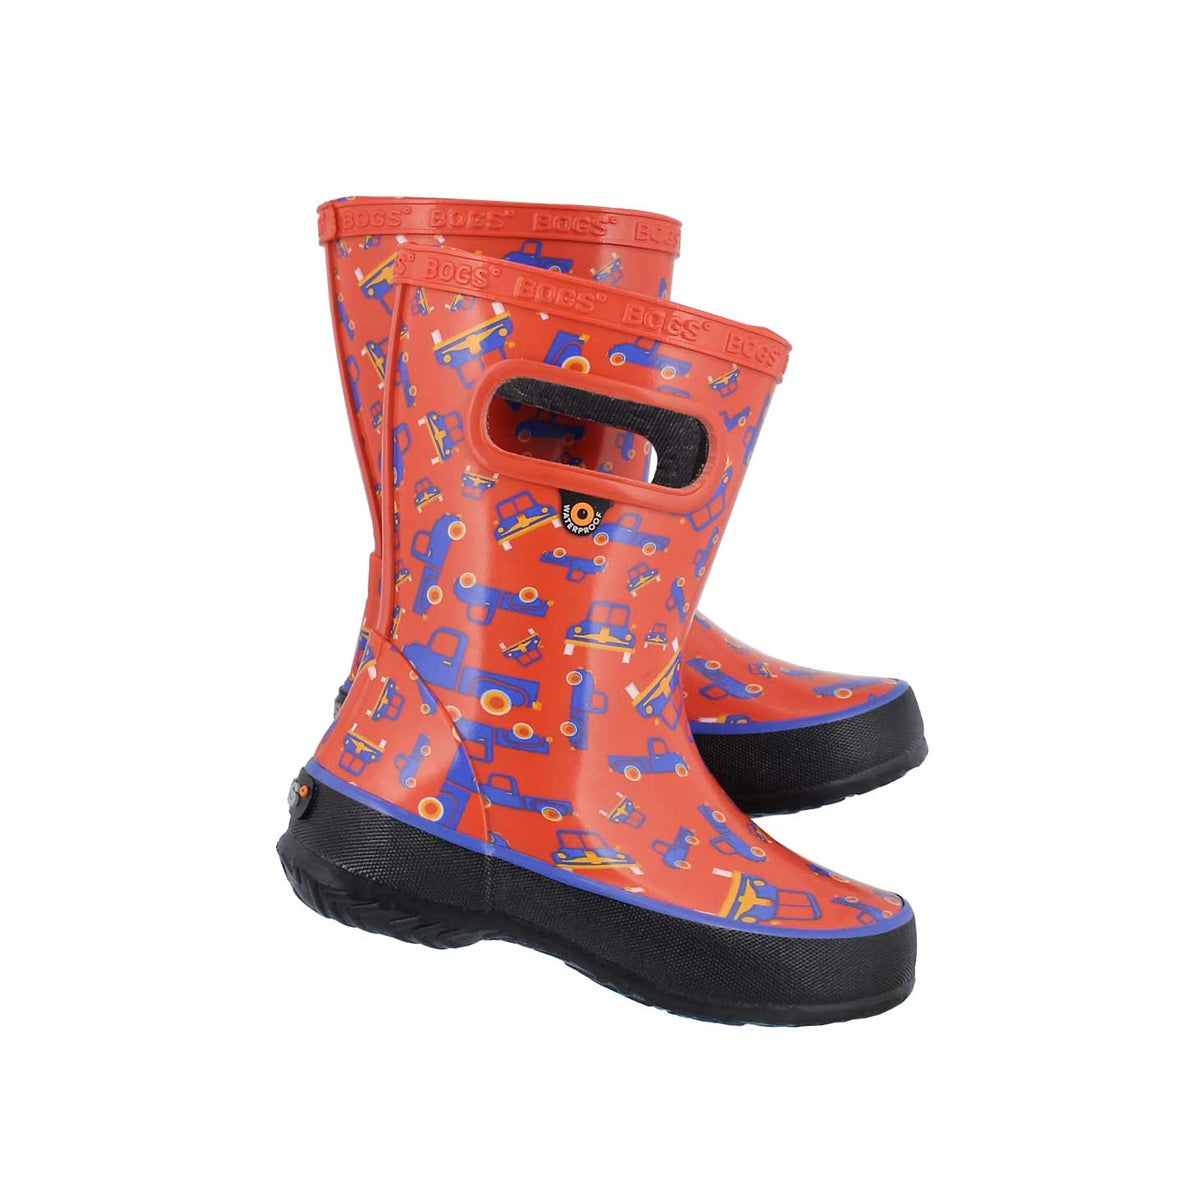 Inf-b Skipper Trucks red mlti rain boot